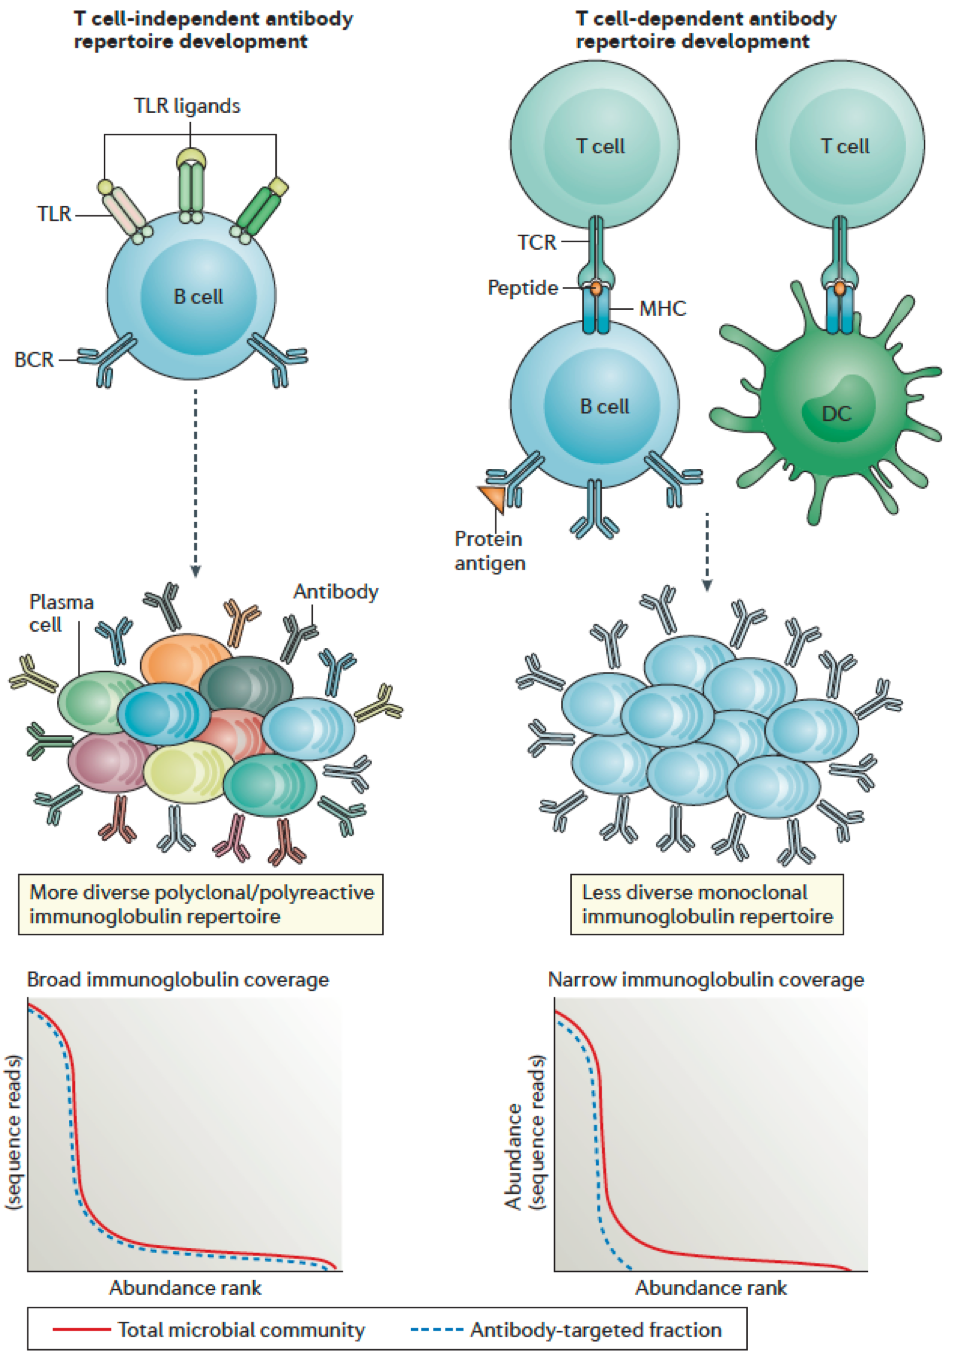 The contribution of T-cell-independent and T-cell-dependent anti-commensal IgA responses in the gut is controversial.  B-cell-intrinsic MHCII signaling can be thought of as a critical factor mediating competition among B cell clones for T cell 'help', which is required for survival of developing B cells during germinal center reactions in the gut. Both the quality and quantity of MHCII:peptide complexes on the surface of different B cells can influence their ability to effectively interact with T cells to gain this survival advantage. We are currently utilizing conditional knockout mouse models to explore this phenomenon to determine how it influences IgA antibody diversity and IgA-mediated sculpting of the microbiome.